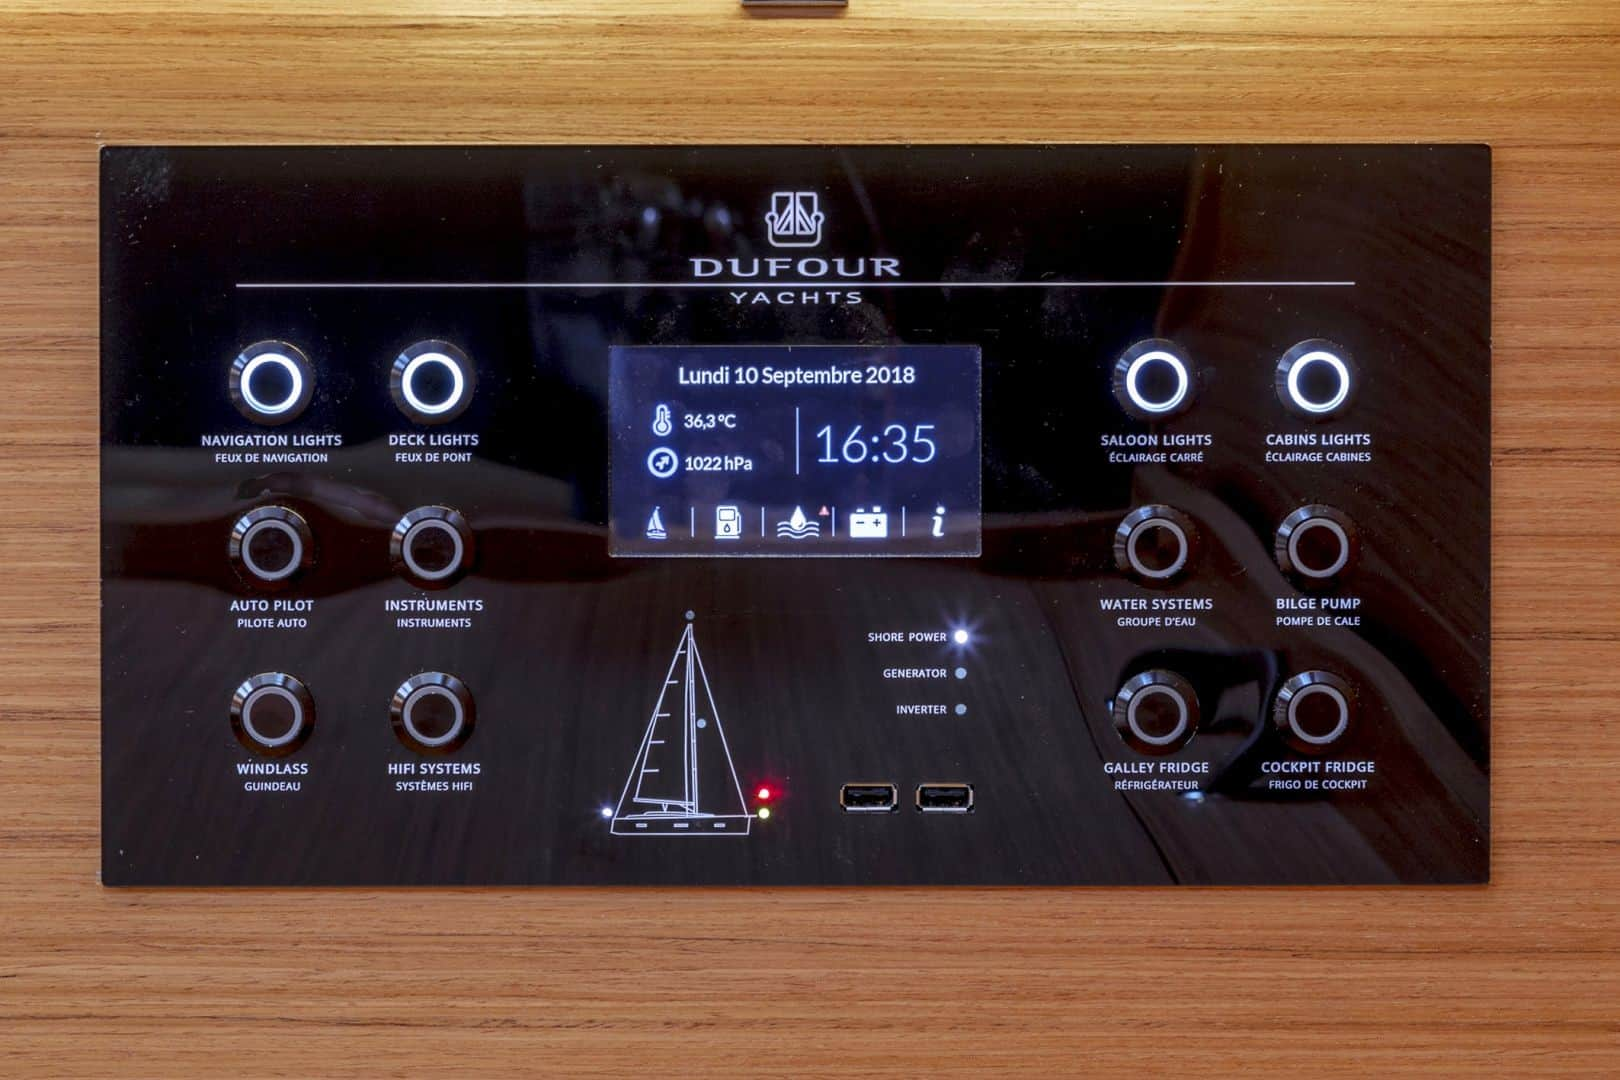 Slick looking control panel with display and buttons to control difference things on the boat